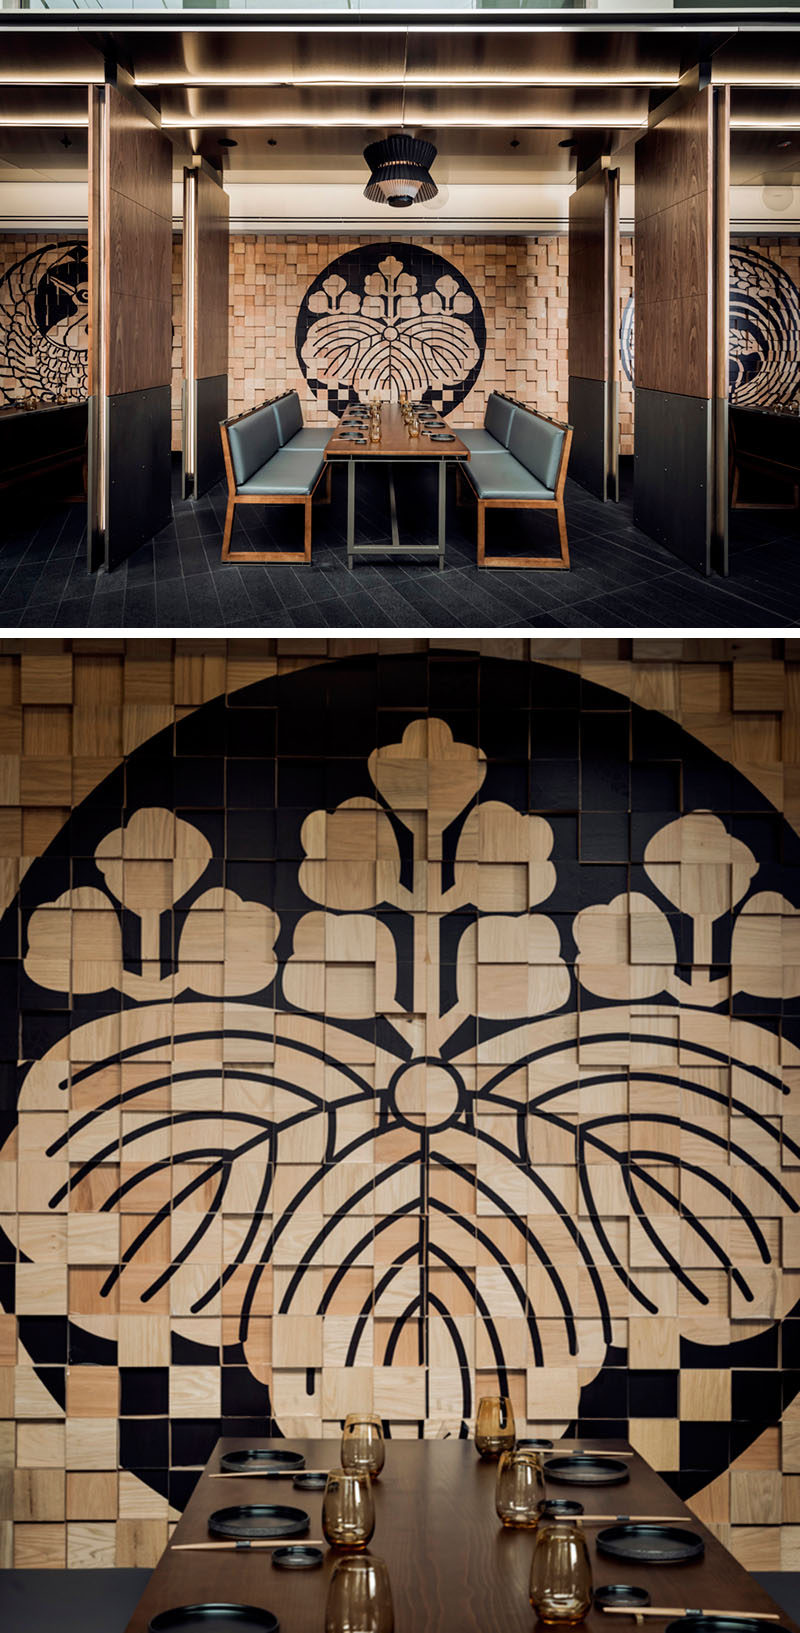 Accent Wall Ideas - 12 Different Ways To Cover Your Walls In Wood // Wood blocks along the back wall of this restaurant have been painted to create beautiful dark designs that still keep the wood grains visible.